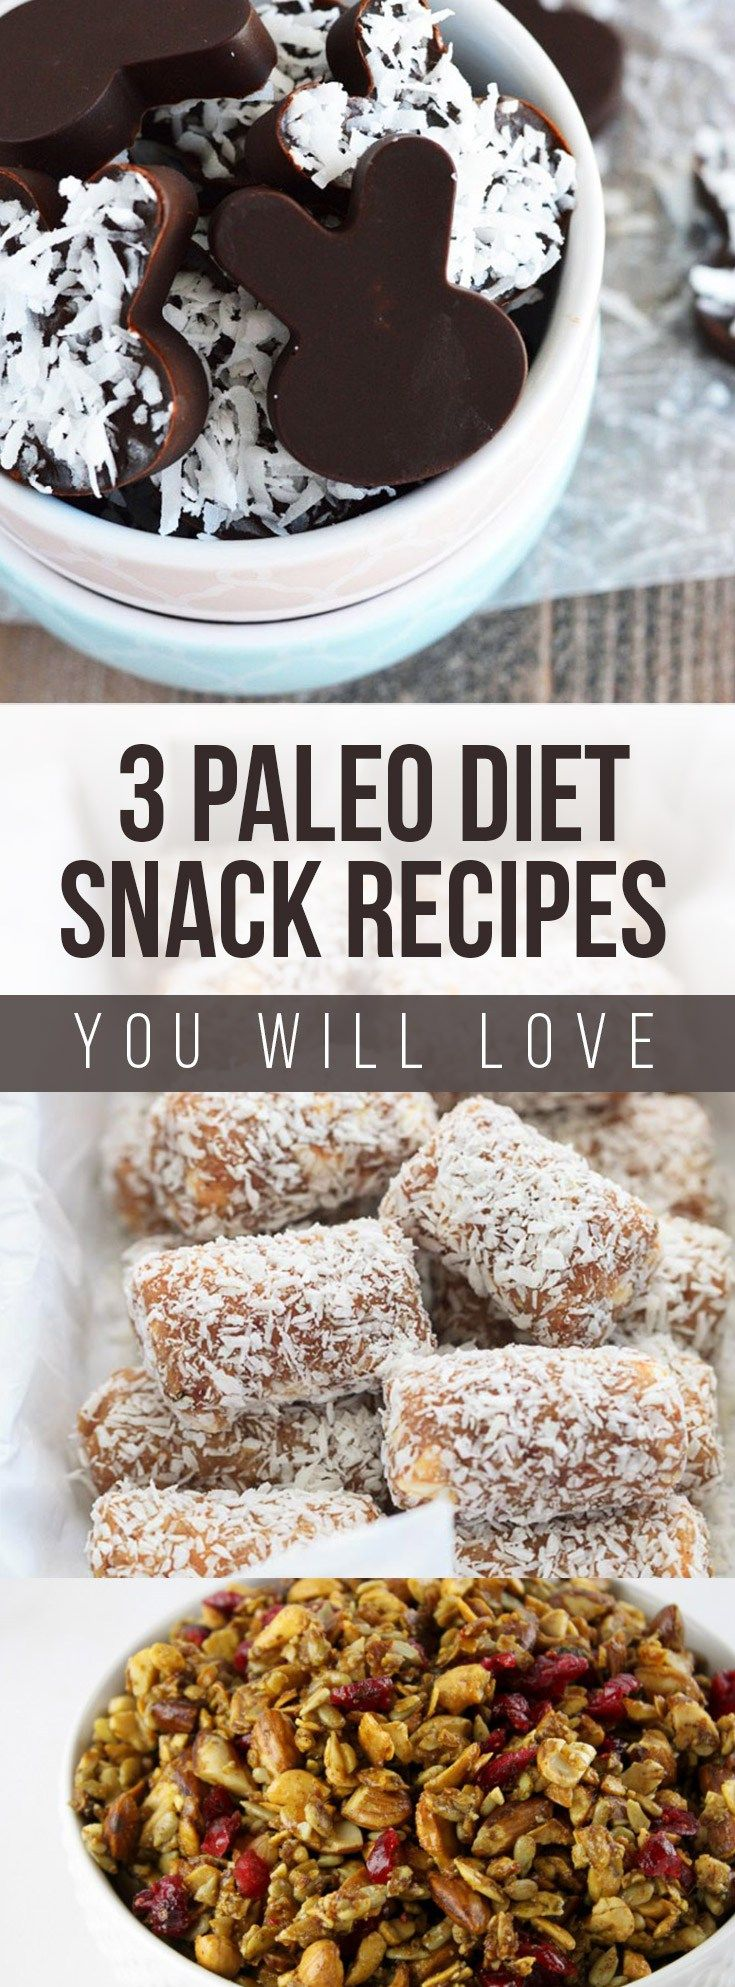 Amazing Paleo Diet Recipes - 3 paleo snacks